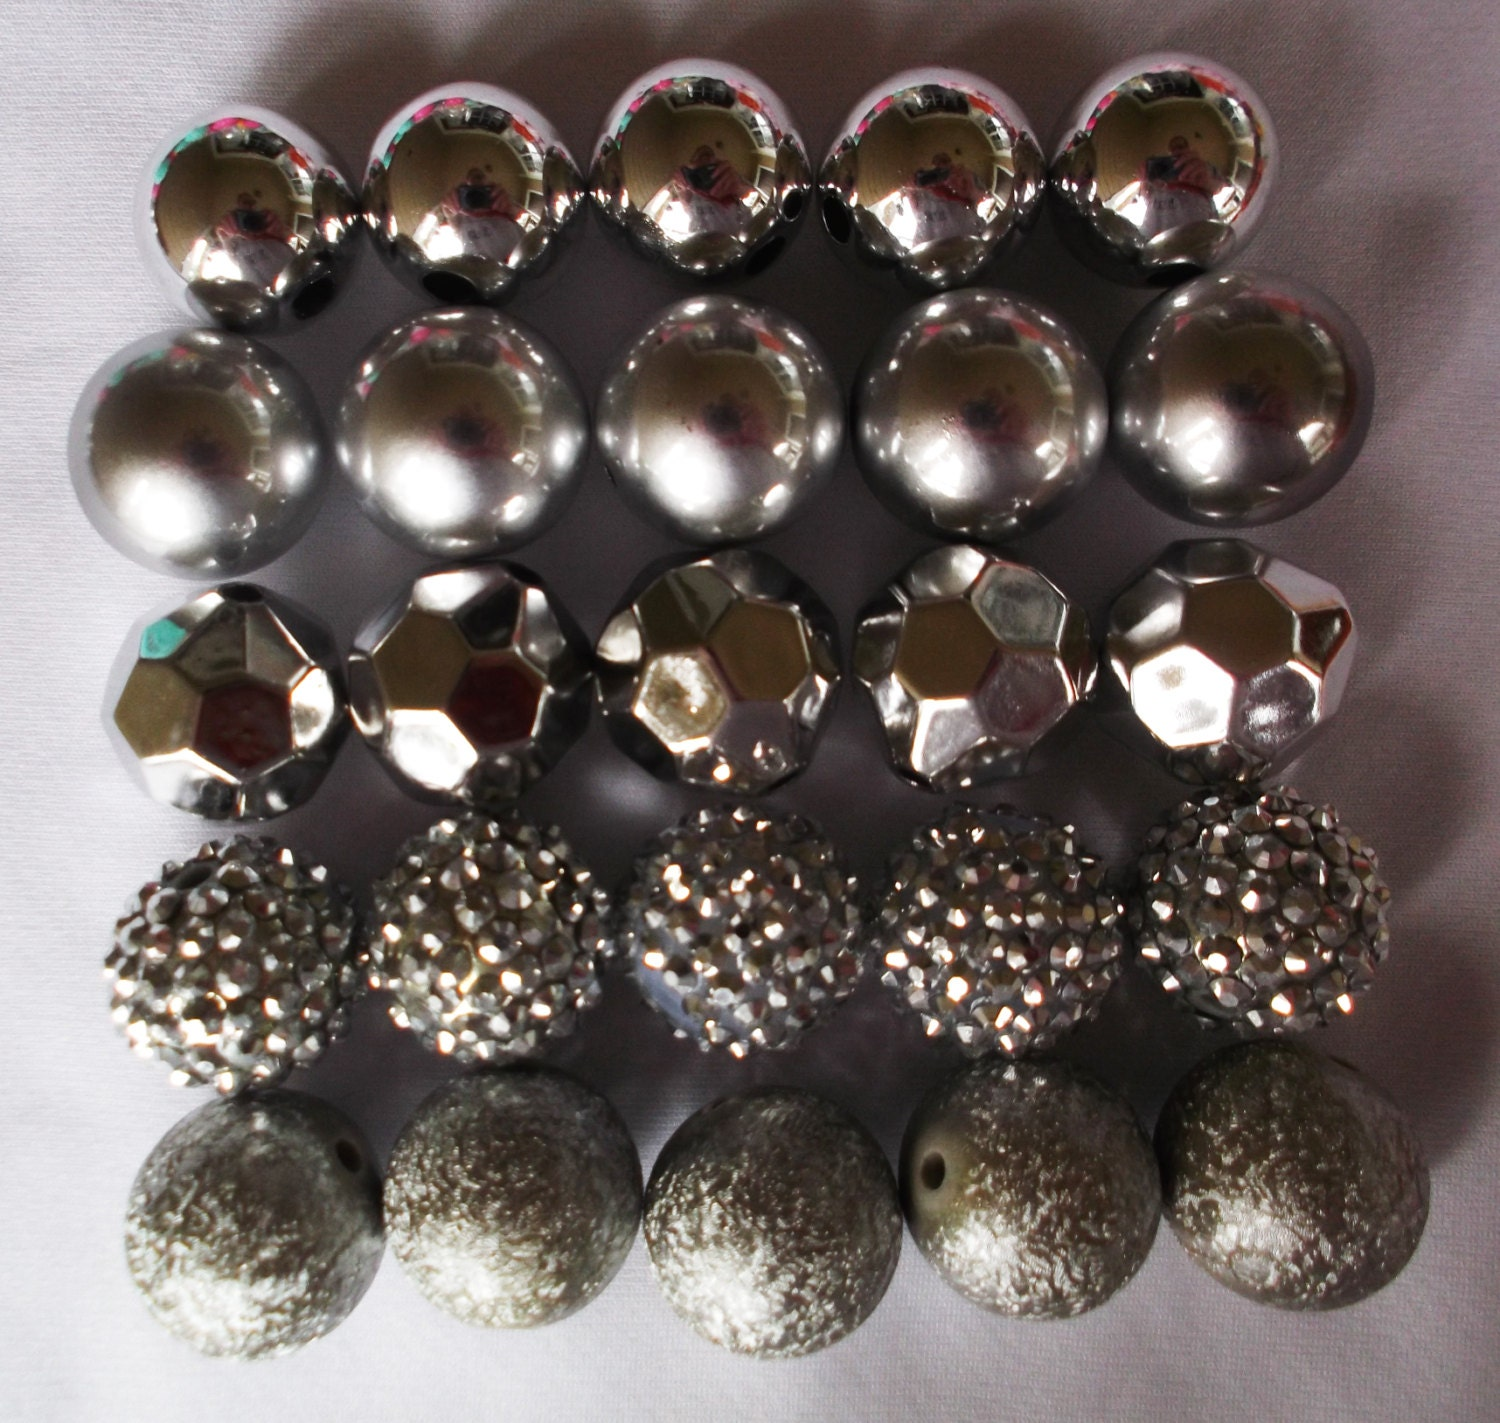 20mm Bead Beads: Set Of 25 20mm Silver Bubblegum Bead Set Bubblegum Bead